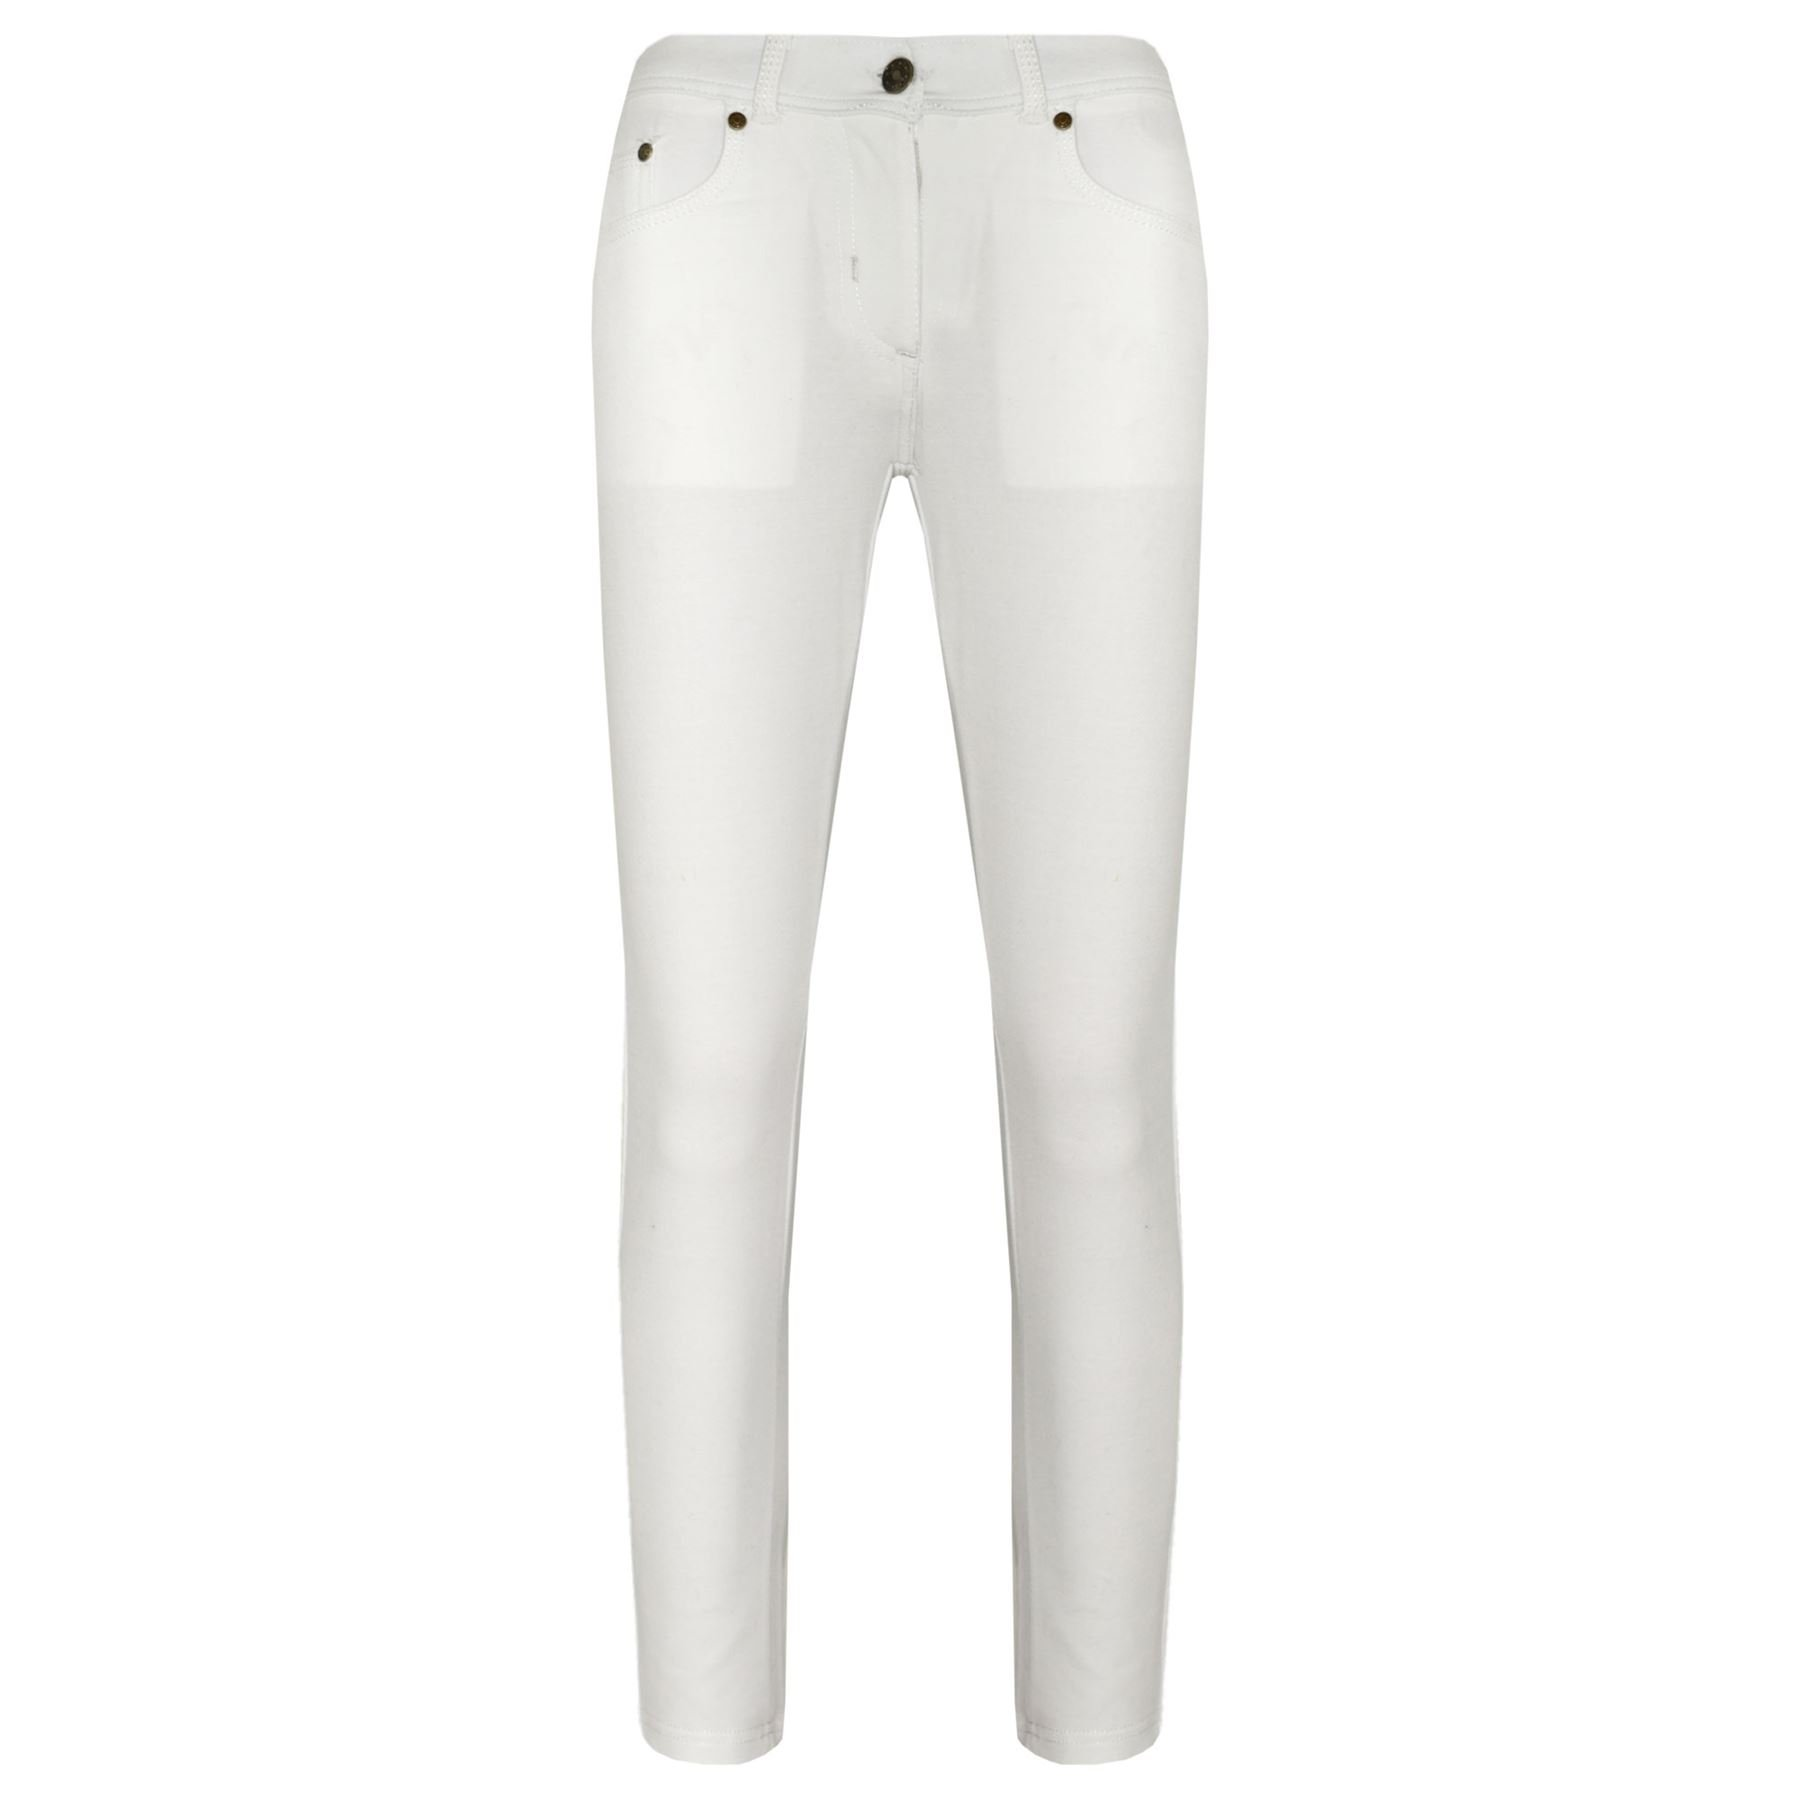 A2Z 4 Kids® Kids Skinny Jeans Girls Stretchy Jeggings Fit Pants coloured Trousers 5-13 Years